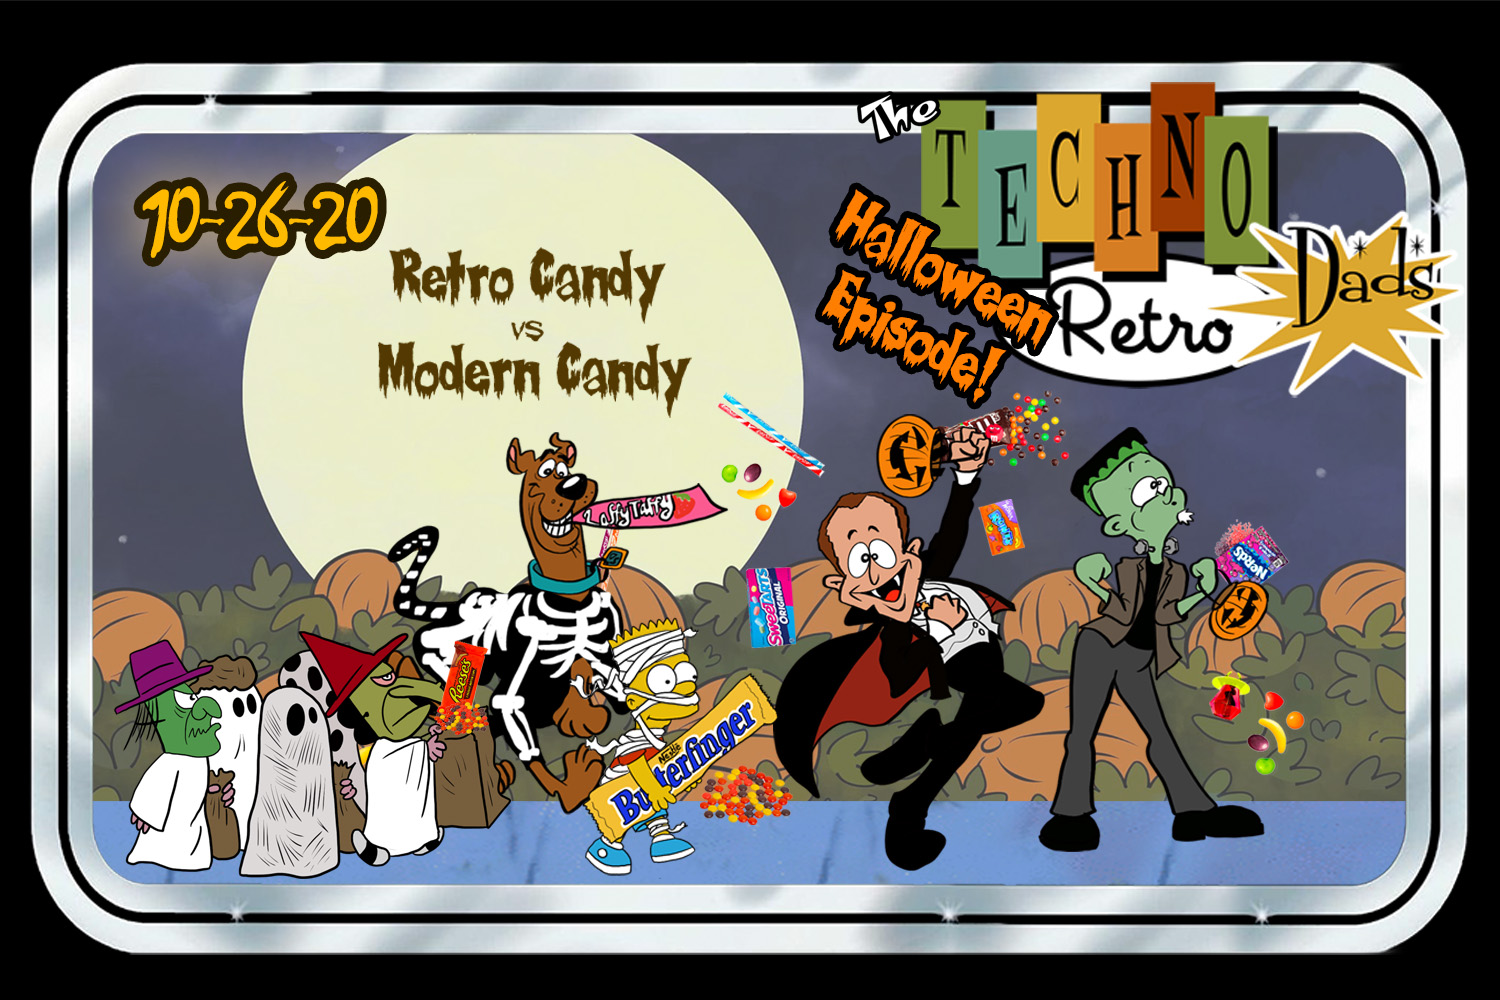 TechnoRetro Dads: Candy Coated Special